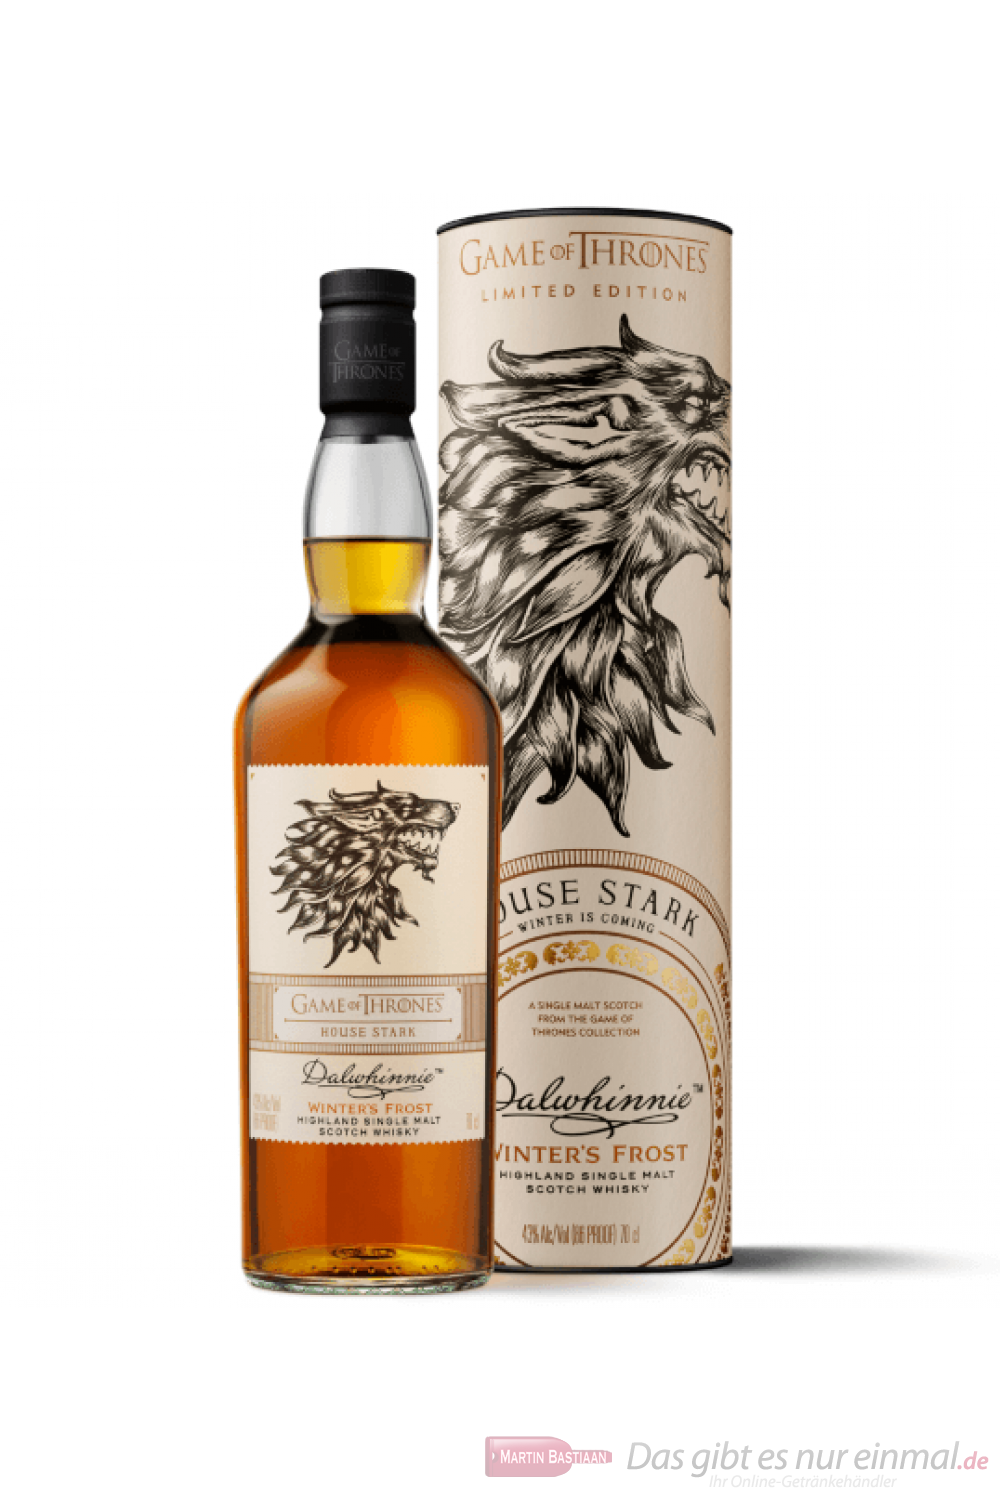 Game of Thrones House Stark Dalwhinnie Winter's Frost Whisky 0,7l